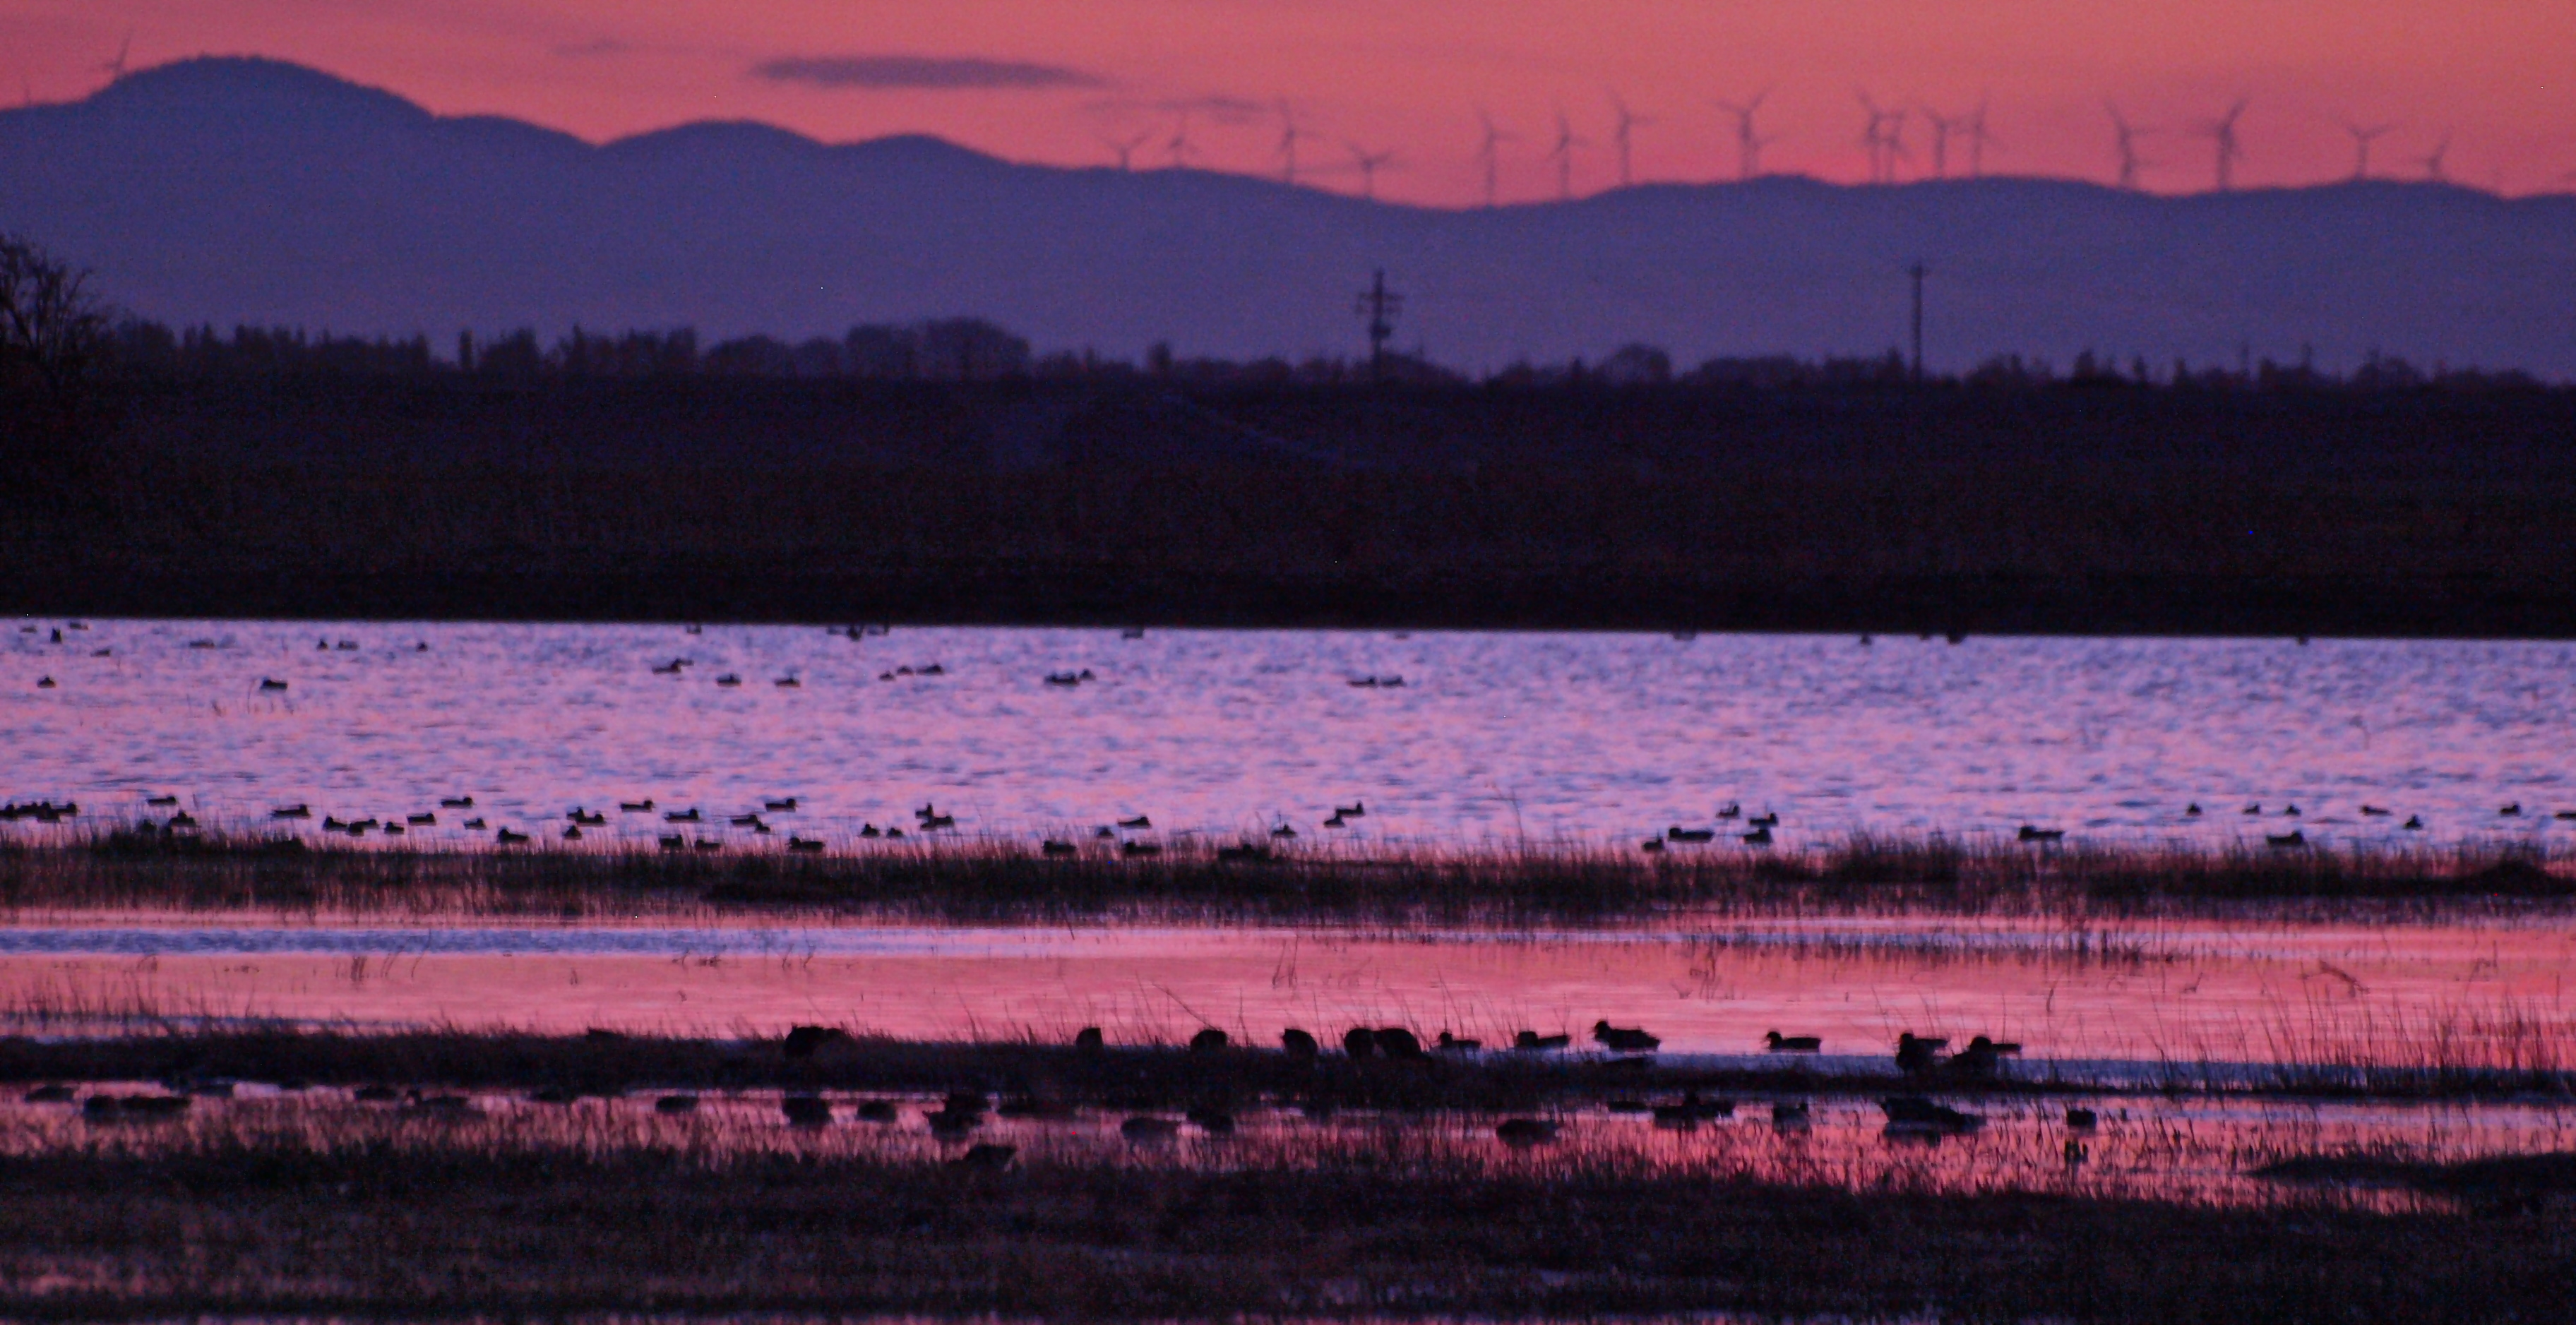 Evening with the Sandhill Cranes